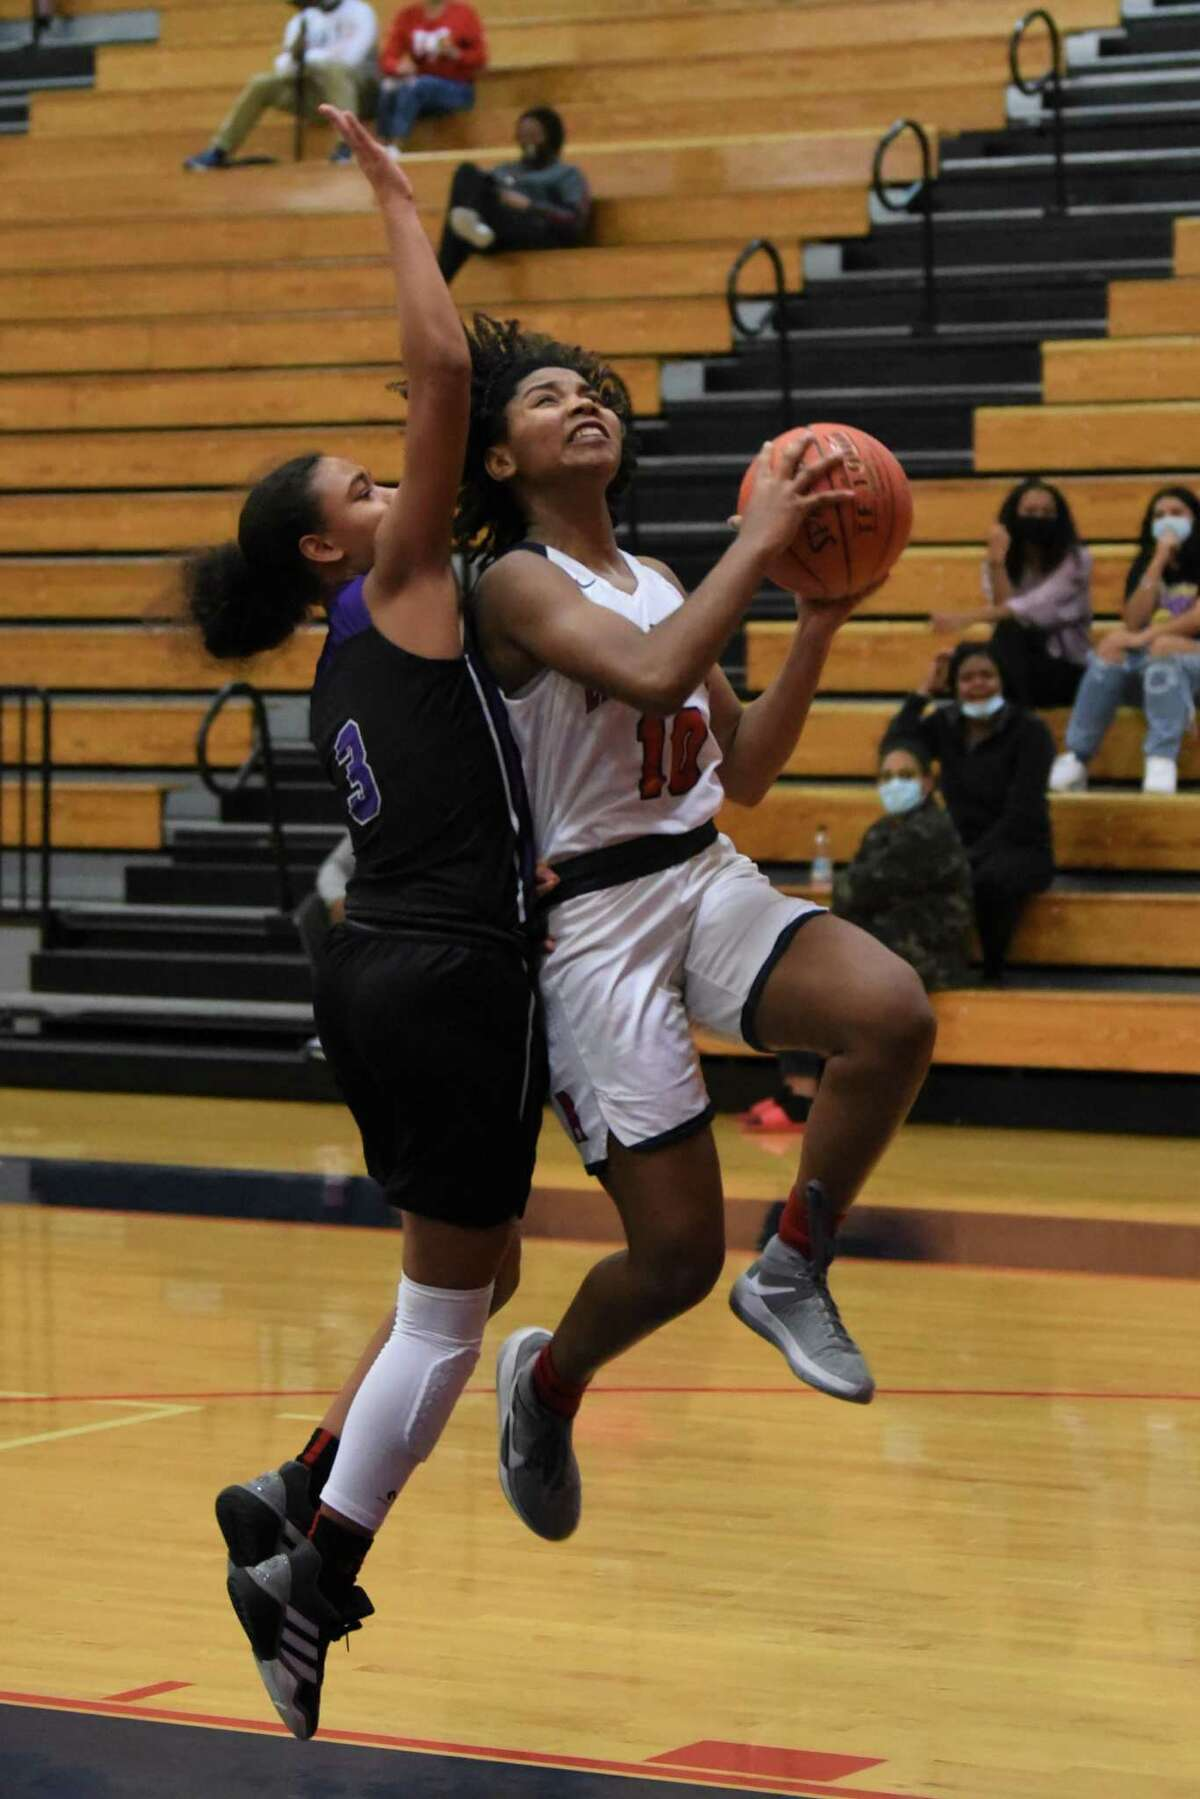 Atascocita senior guard Robin Whitehead goes for a layup agaisnt Humble in a District 21-6A game Tuesday night at the Eagles gym.